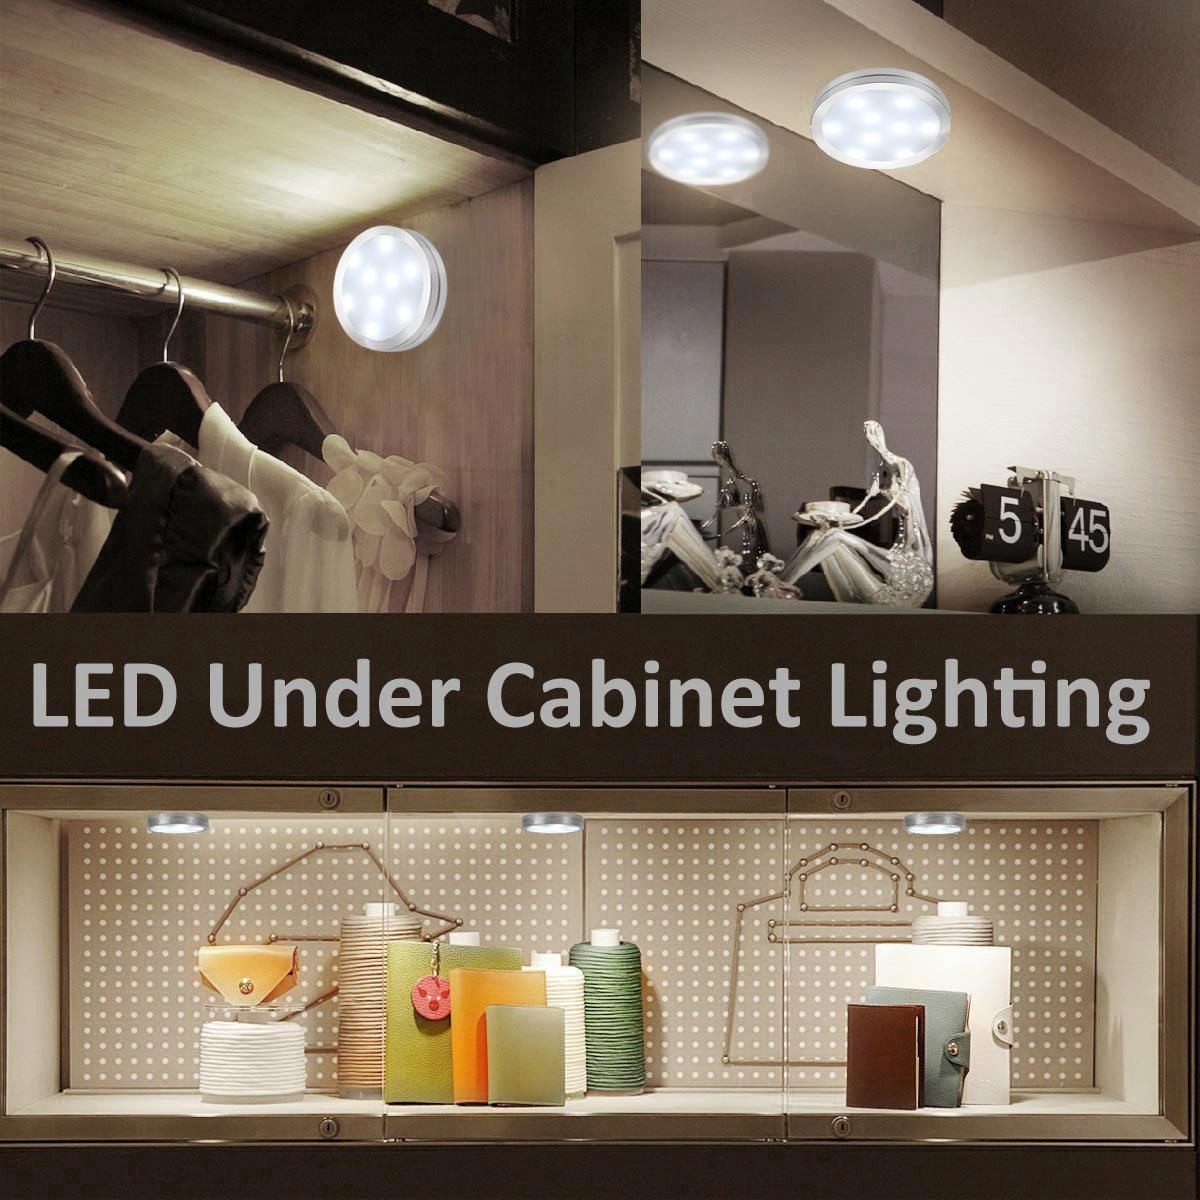 le led under cabinet lighting kit 510lm puck lights under counter lighting 6000k daylight white all accessories included kitchen lighting closet light cabinet lighting puck light